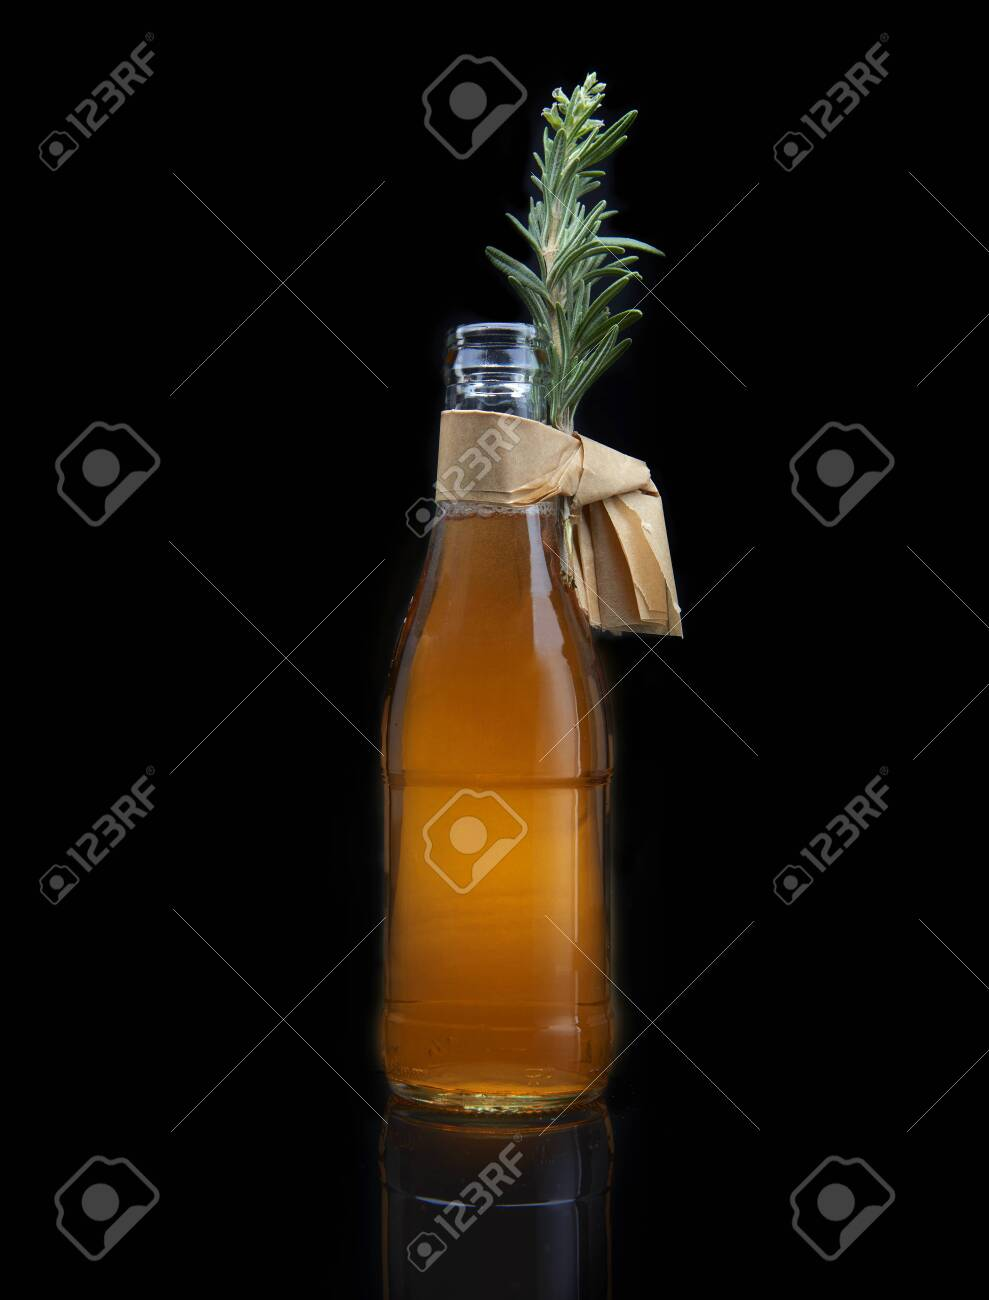 refreshing cocktail in bottle with rosemary, on black background - 131905283